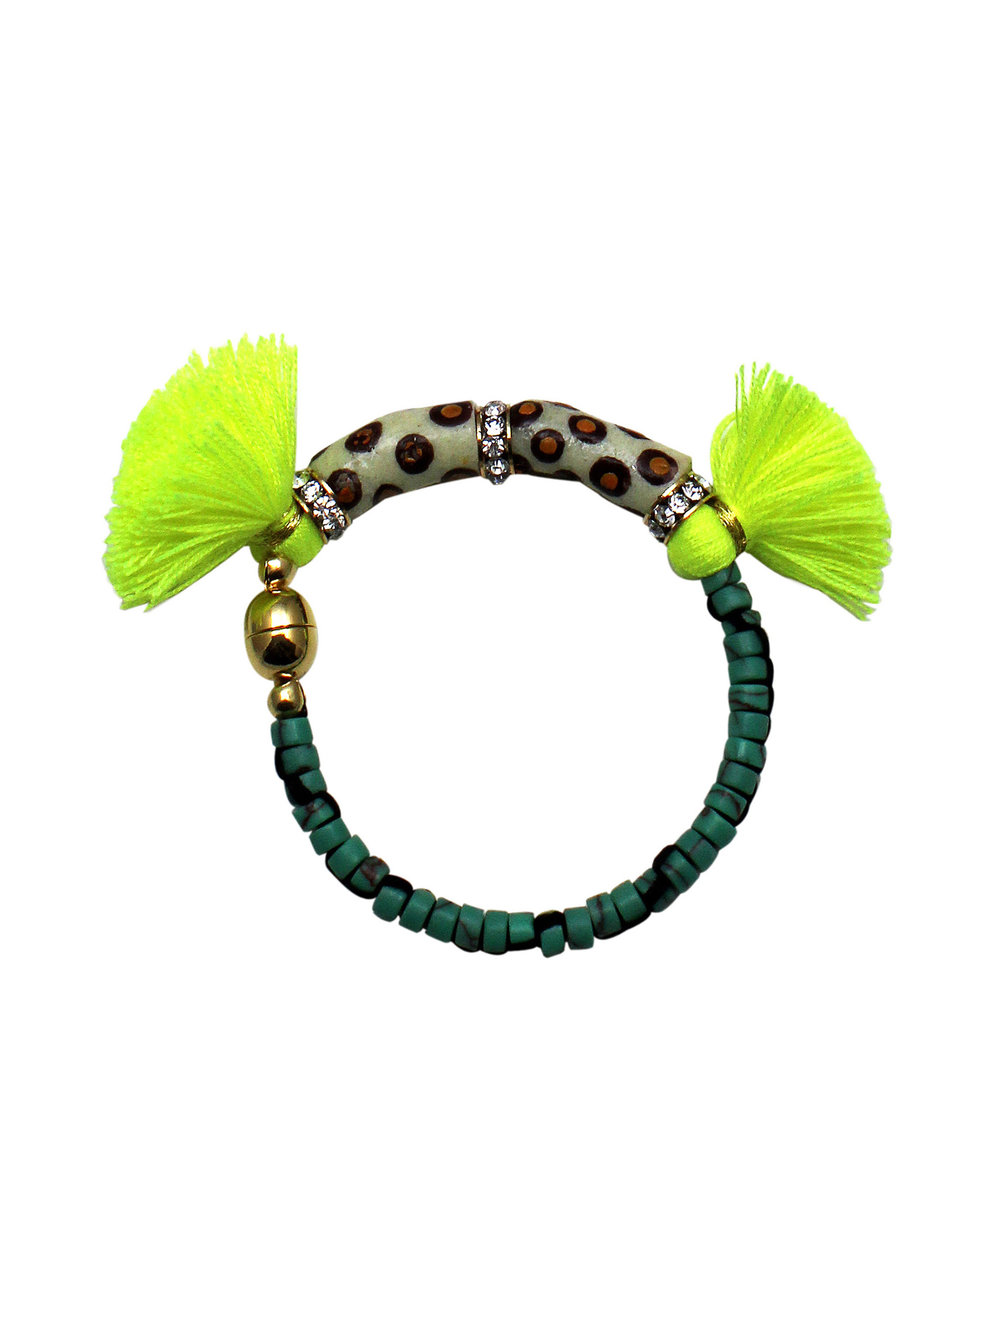 B 197B Maasai Jungle Bracelet.jpg